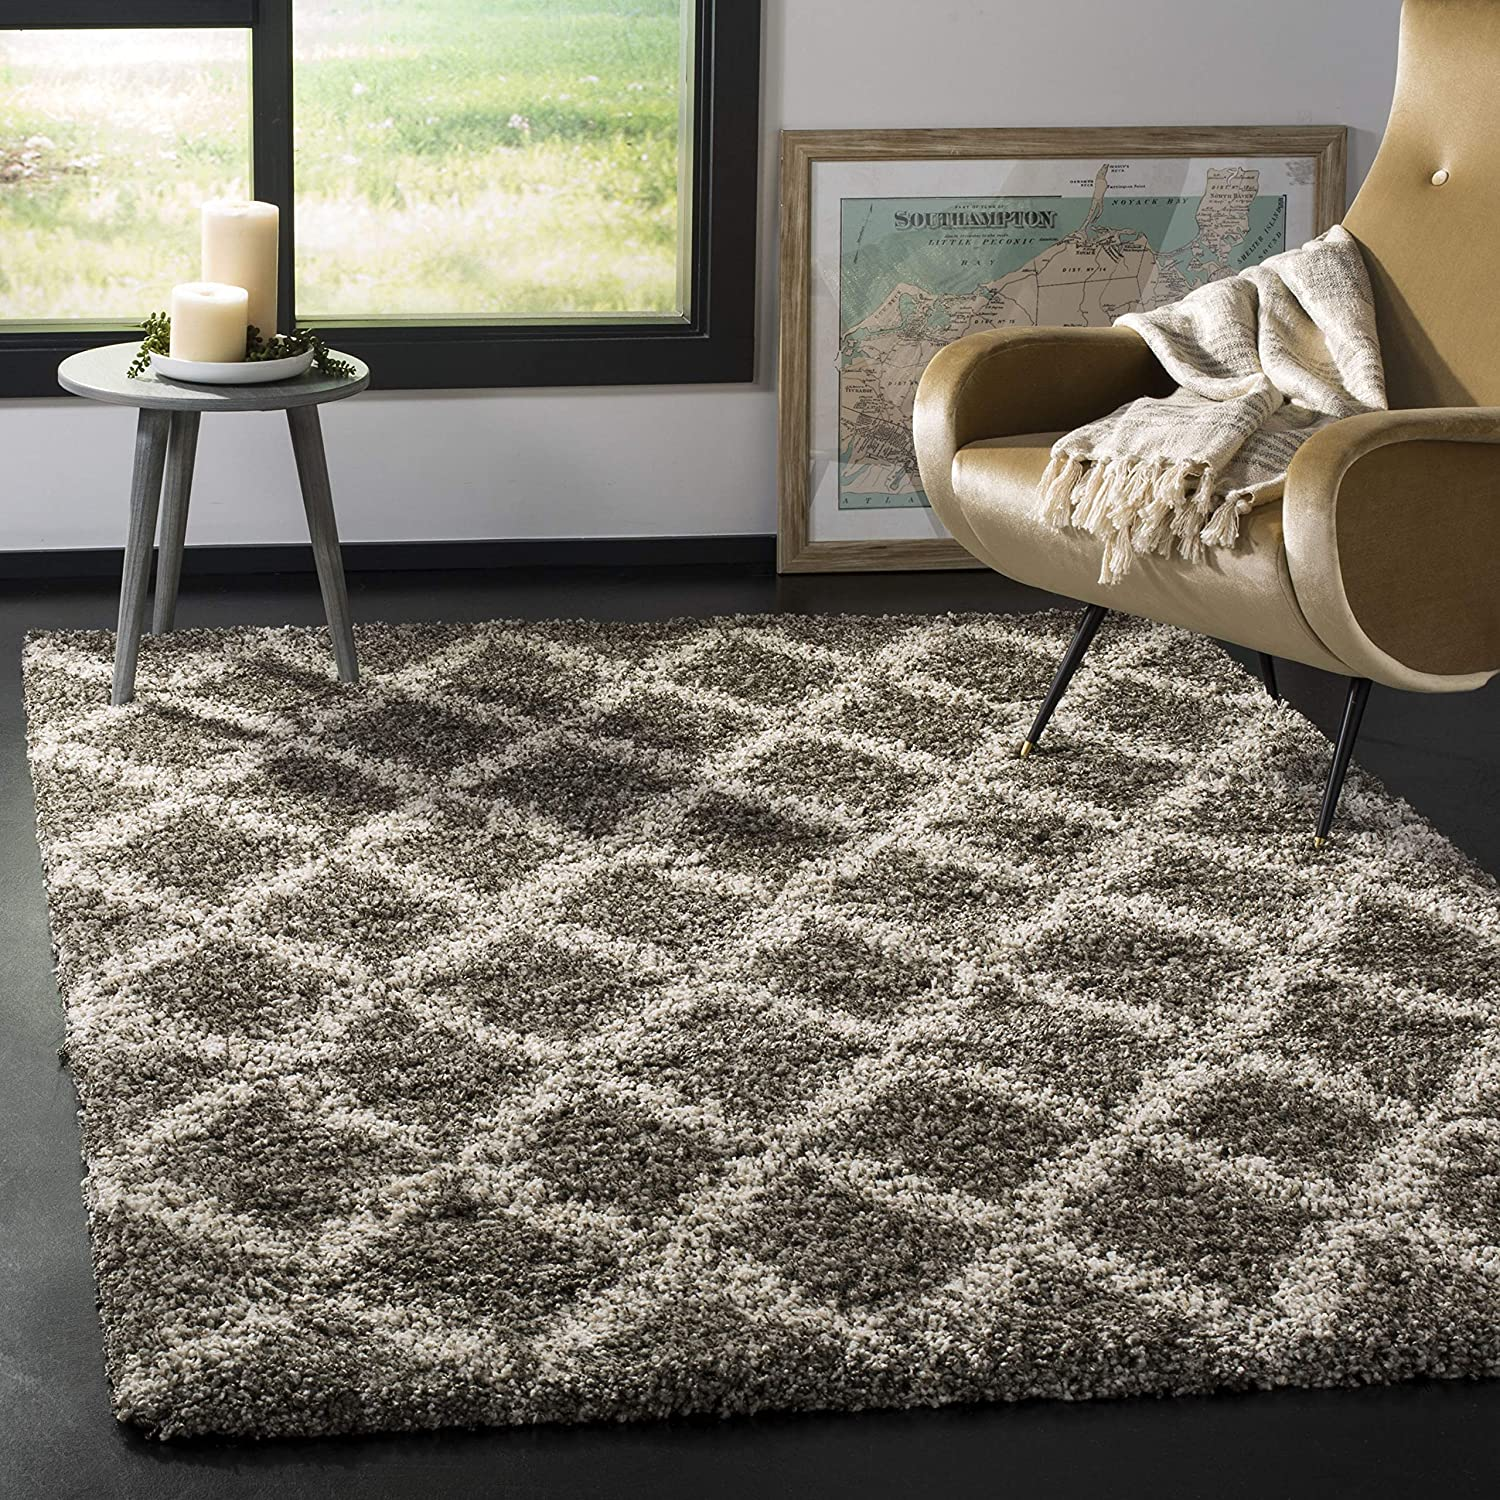 SAFAVIEH Hudson Shag Collection SGH333B Moroccan Trellis Non-Shedding Living Room Bedroom Dining Room Entryway Plush 2-inch Thick Area Rug, 6' x 9', Grey / Ivory